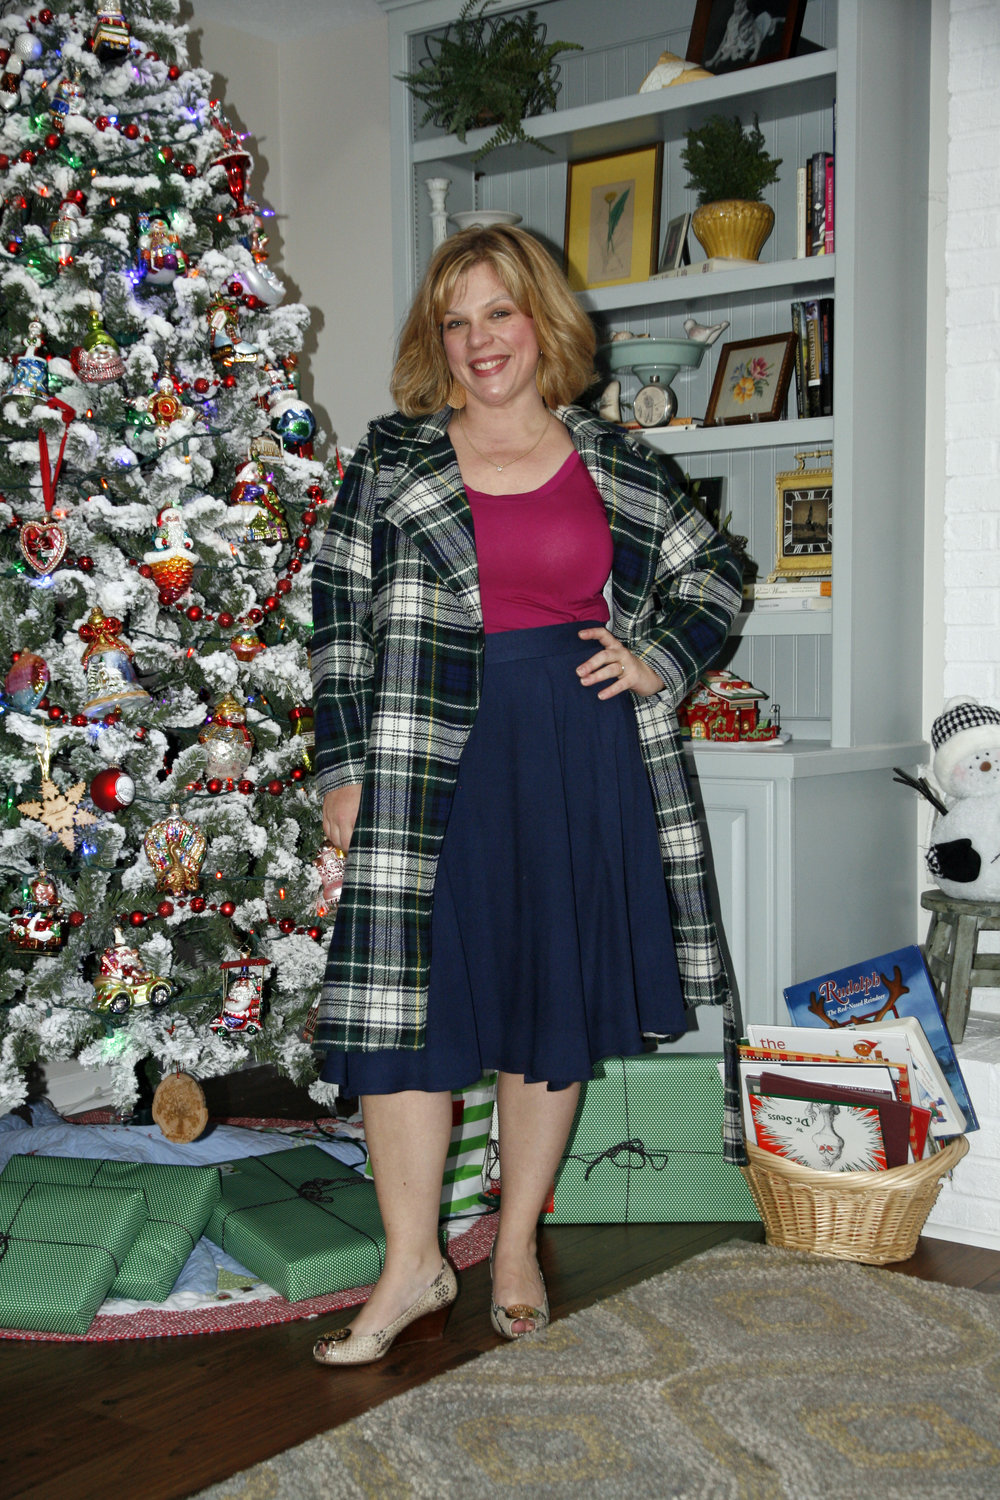 Nettie Top, Kate Skirt, and Anna Coat